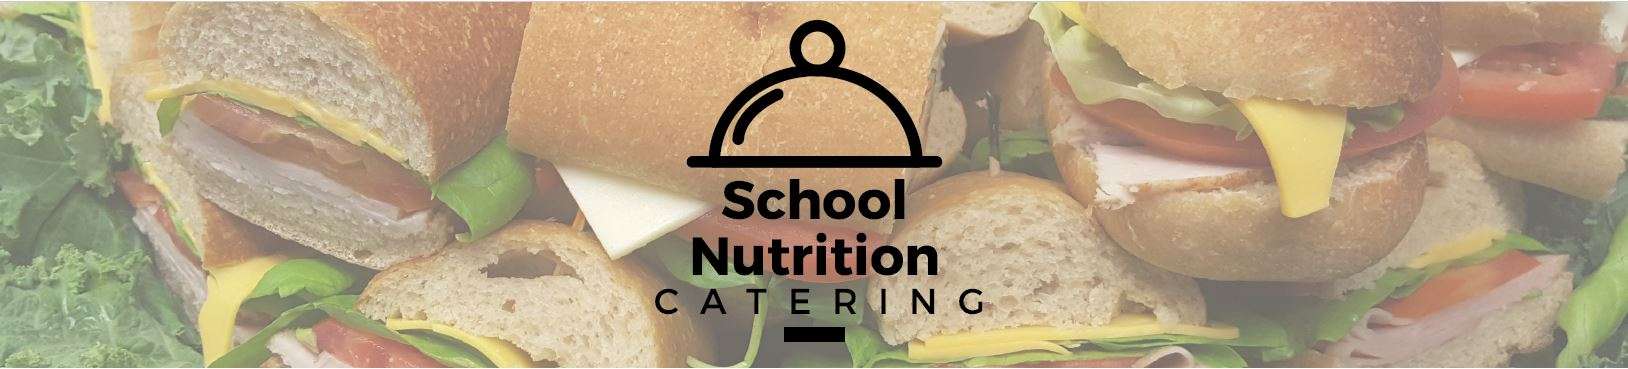 Fulton County School Nutrition Catering